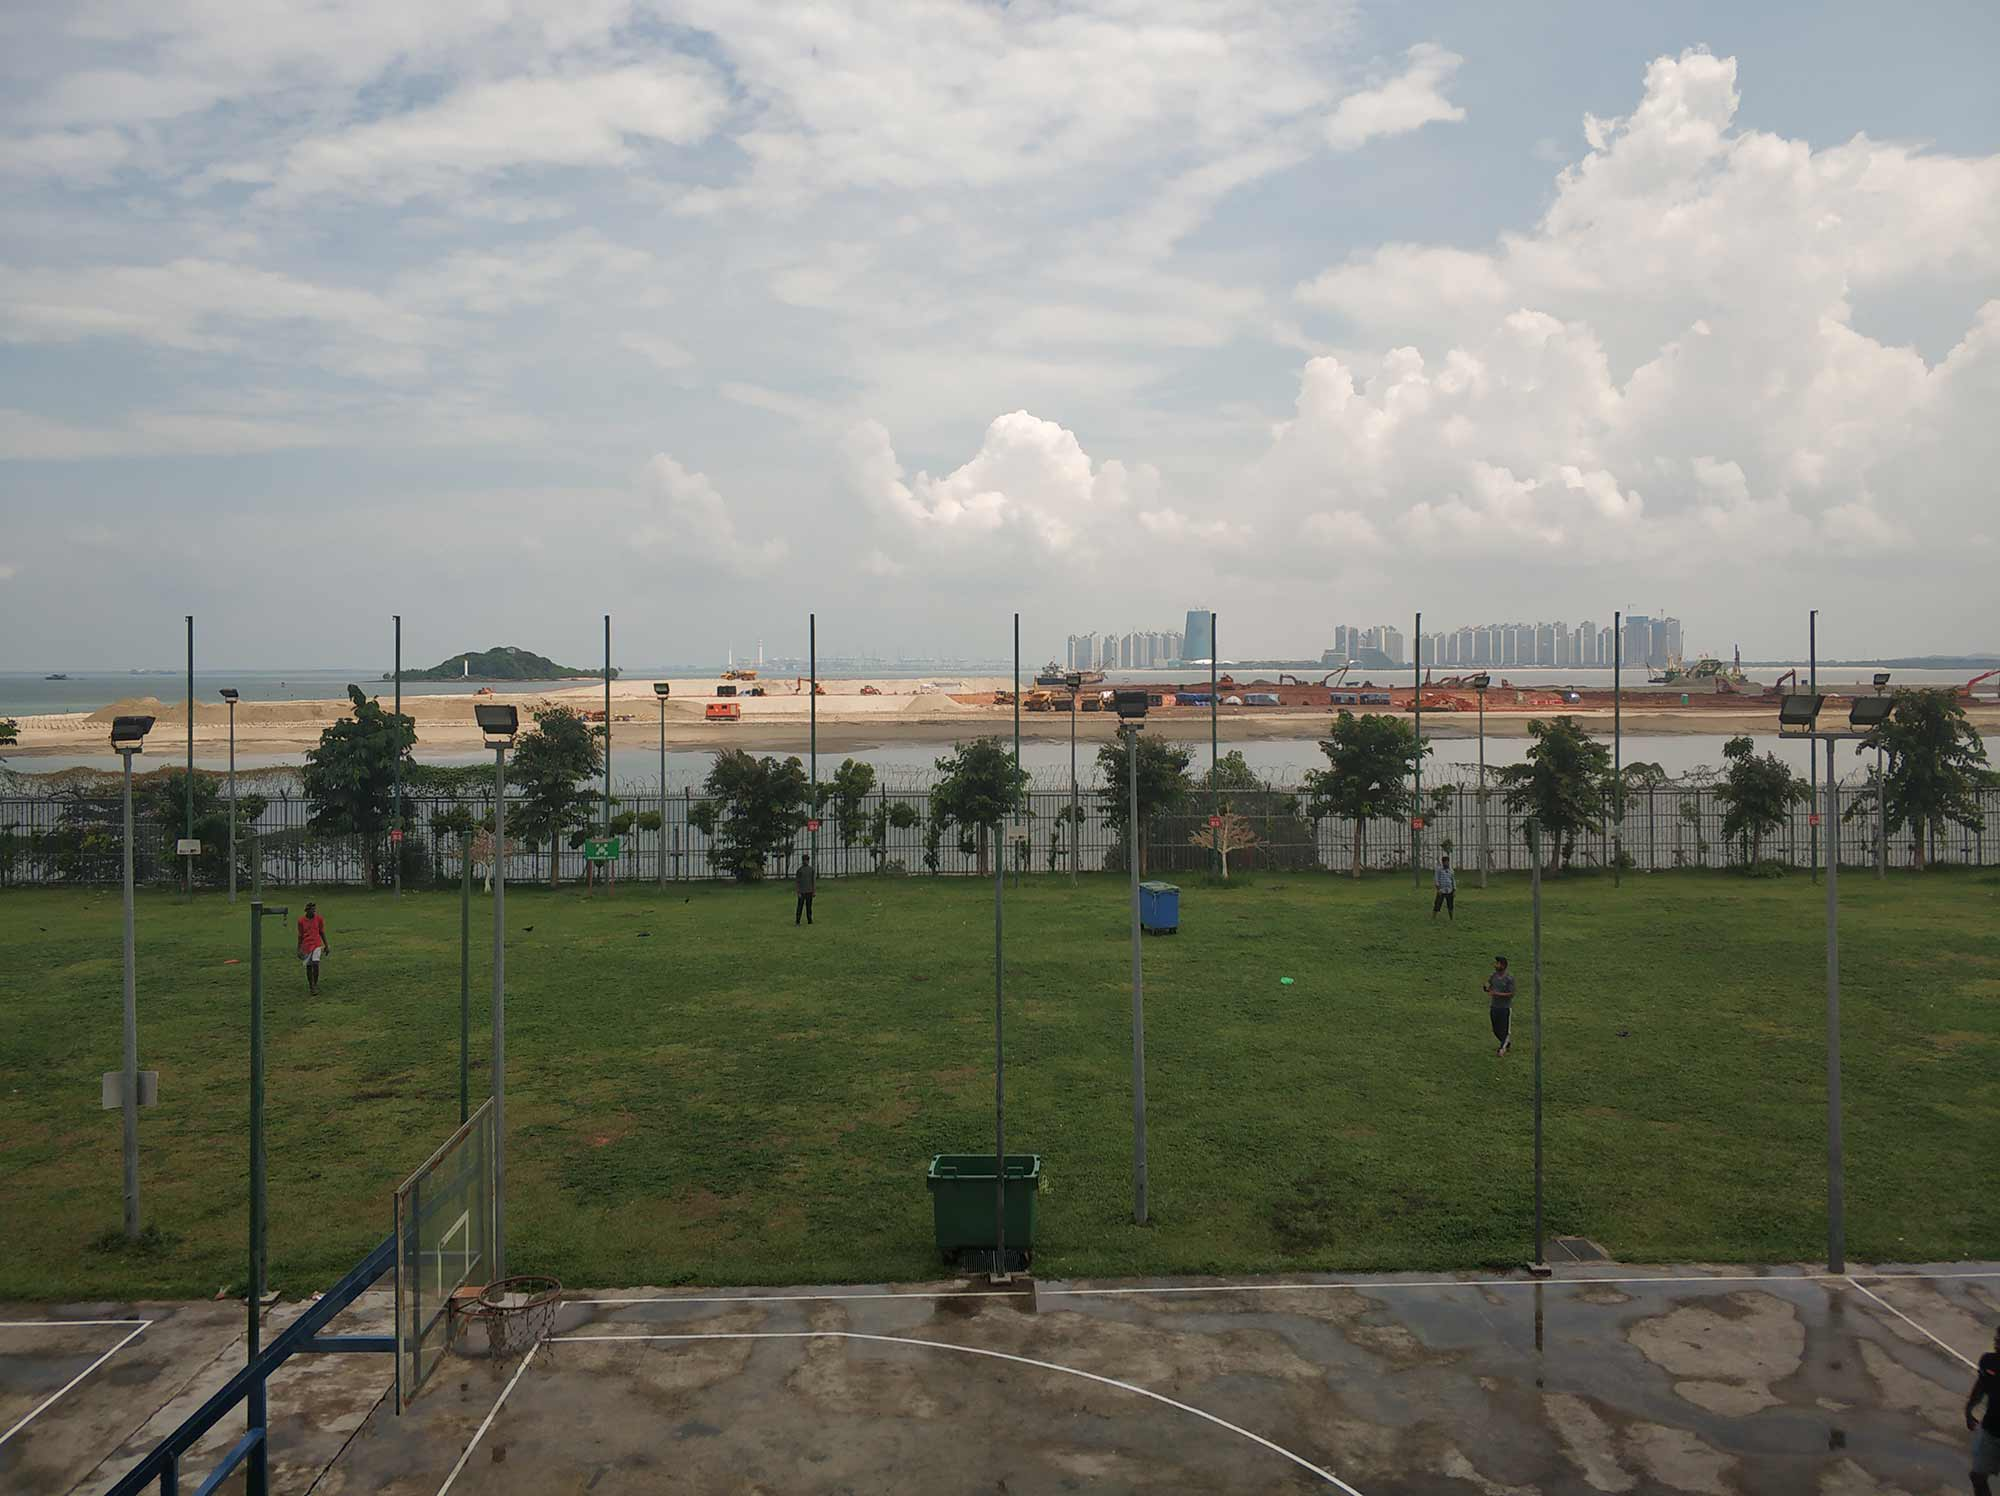 Tuas View migrant worker dormitory and adjacent reclamation, 2019. Photograph: William Jamieson.